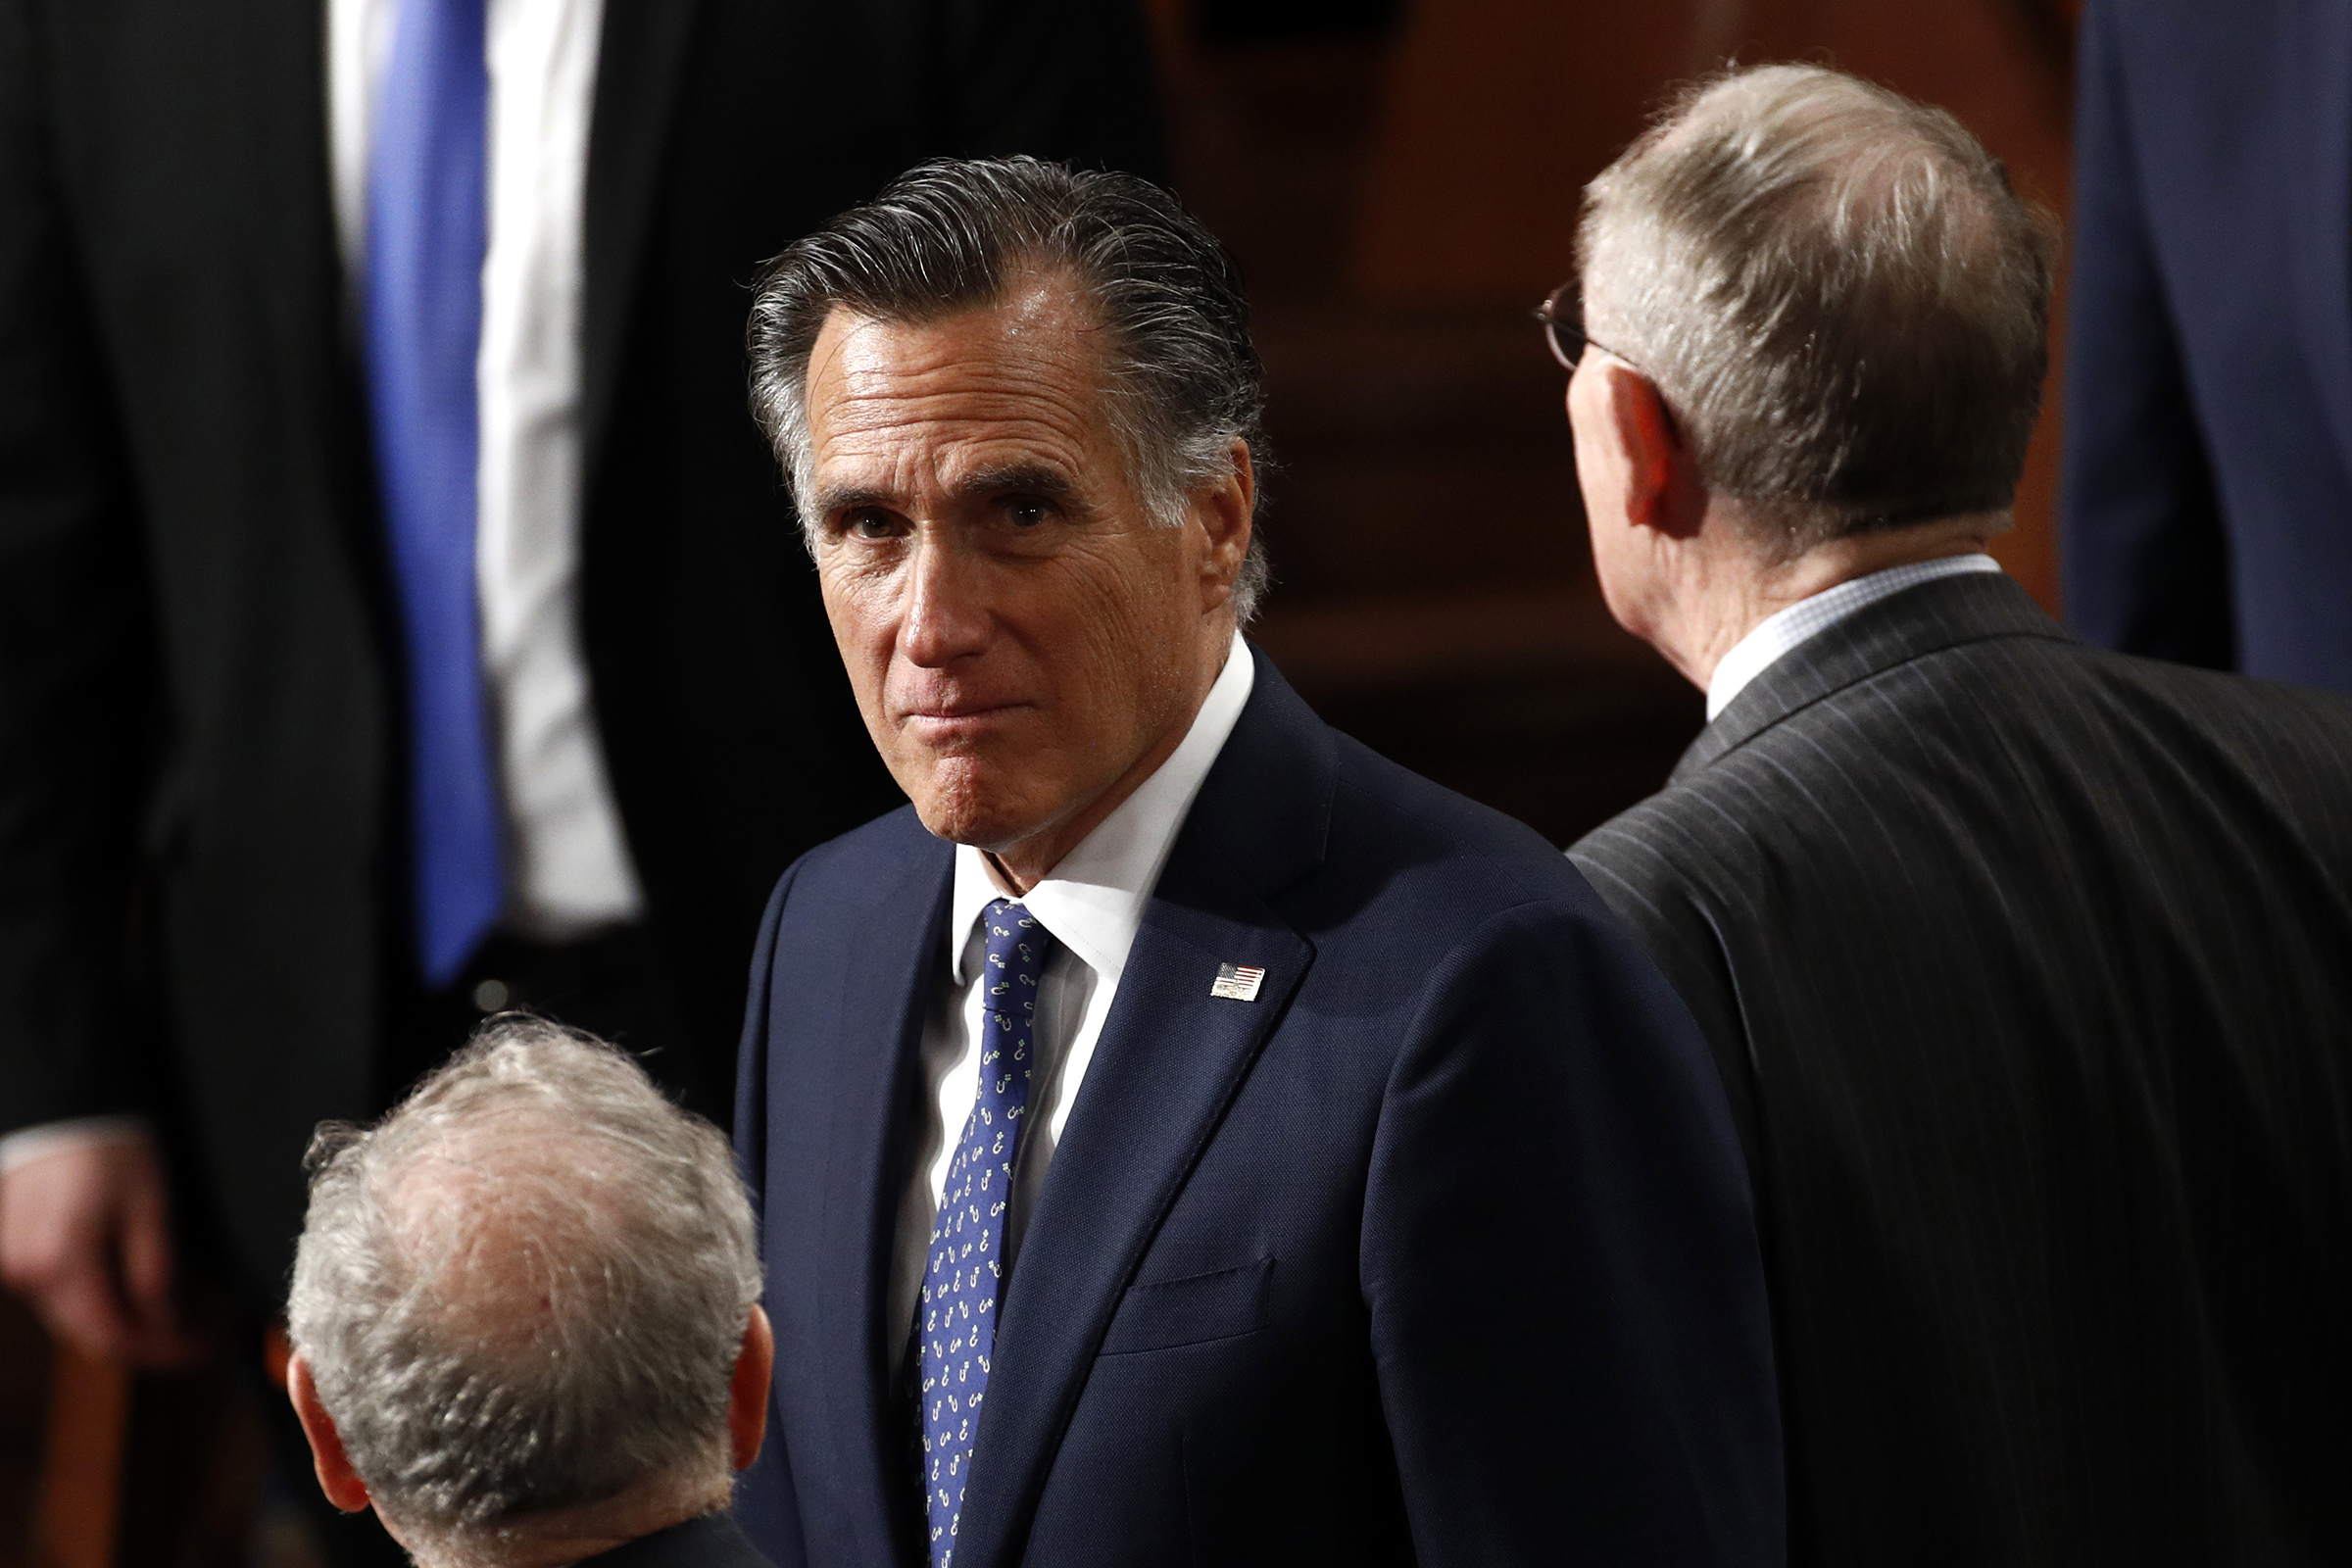 Sen. Mitt Romney, R-Utah, arrives before President Donald Trump delivers his State of the Union address to a joint session of Congress on Capitol Hill in Washington on Feb. 4, 2020.